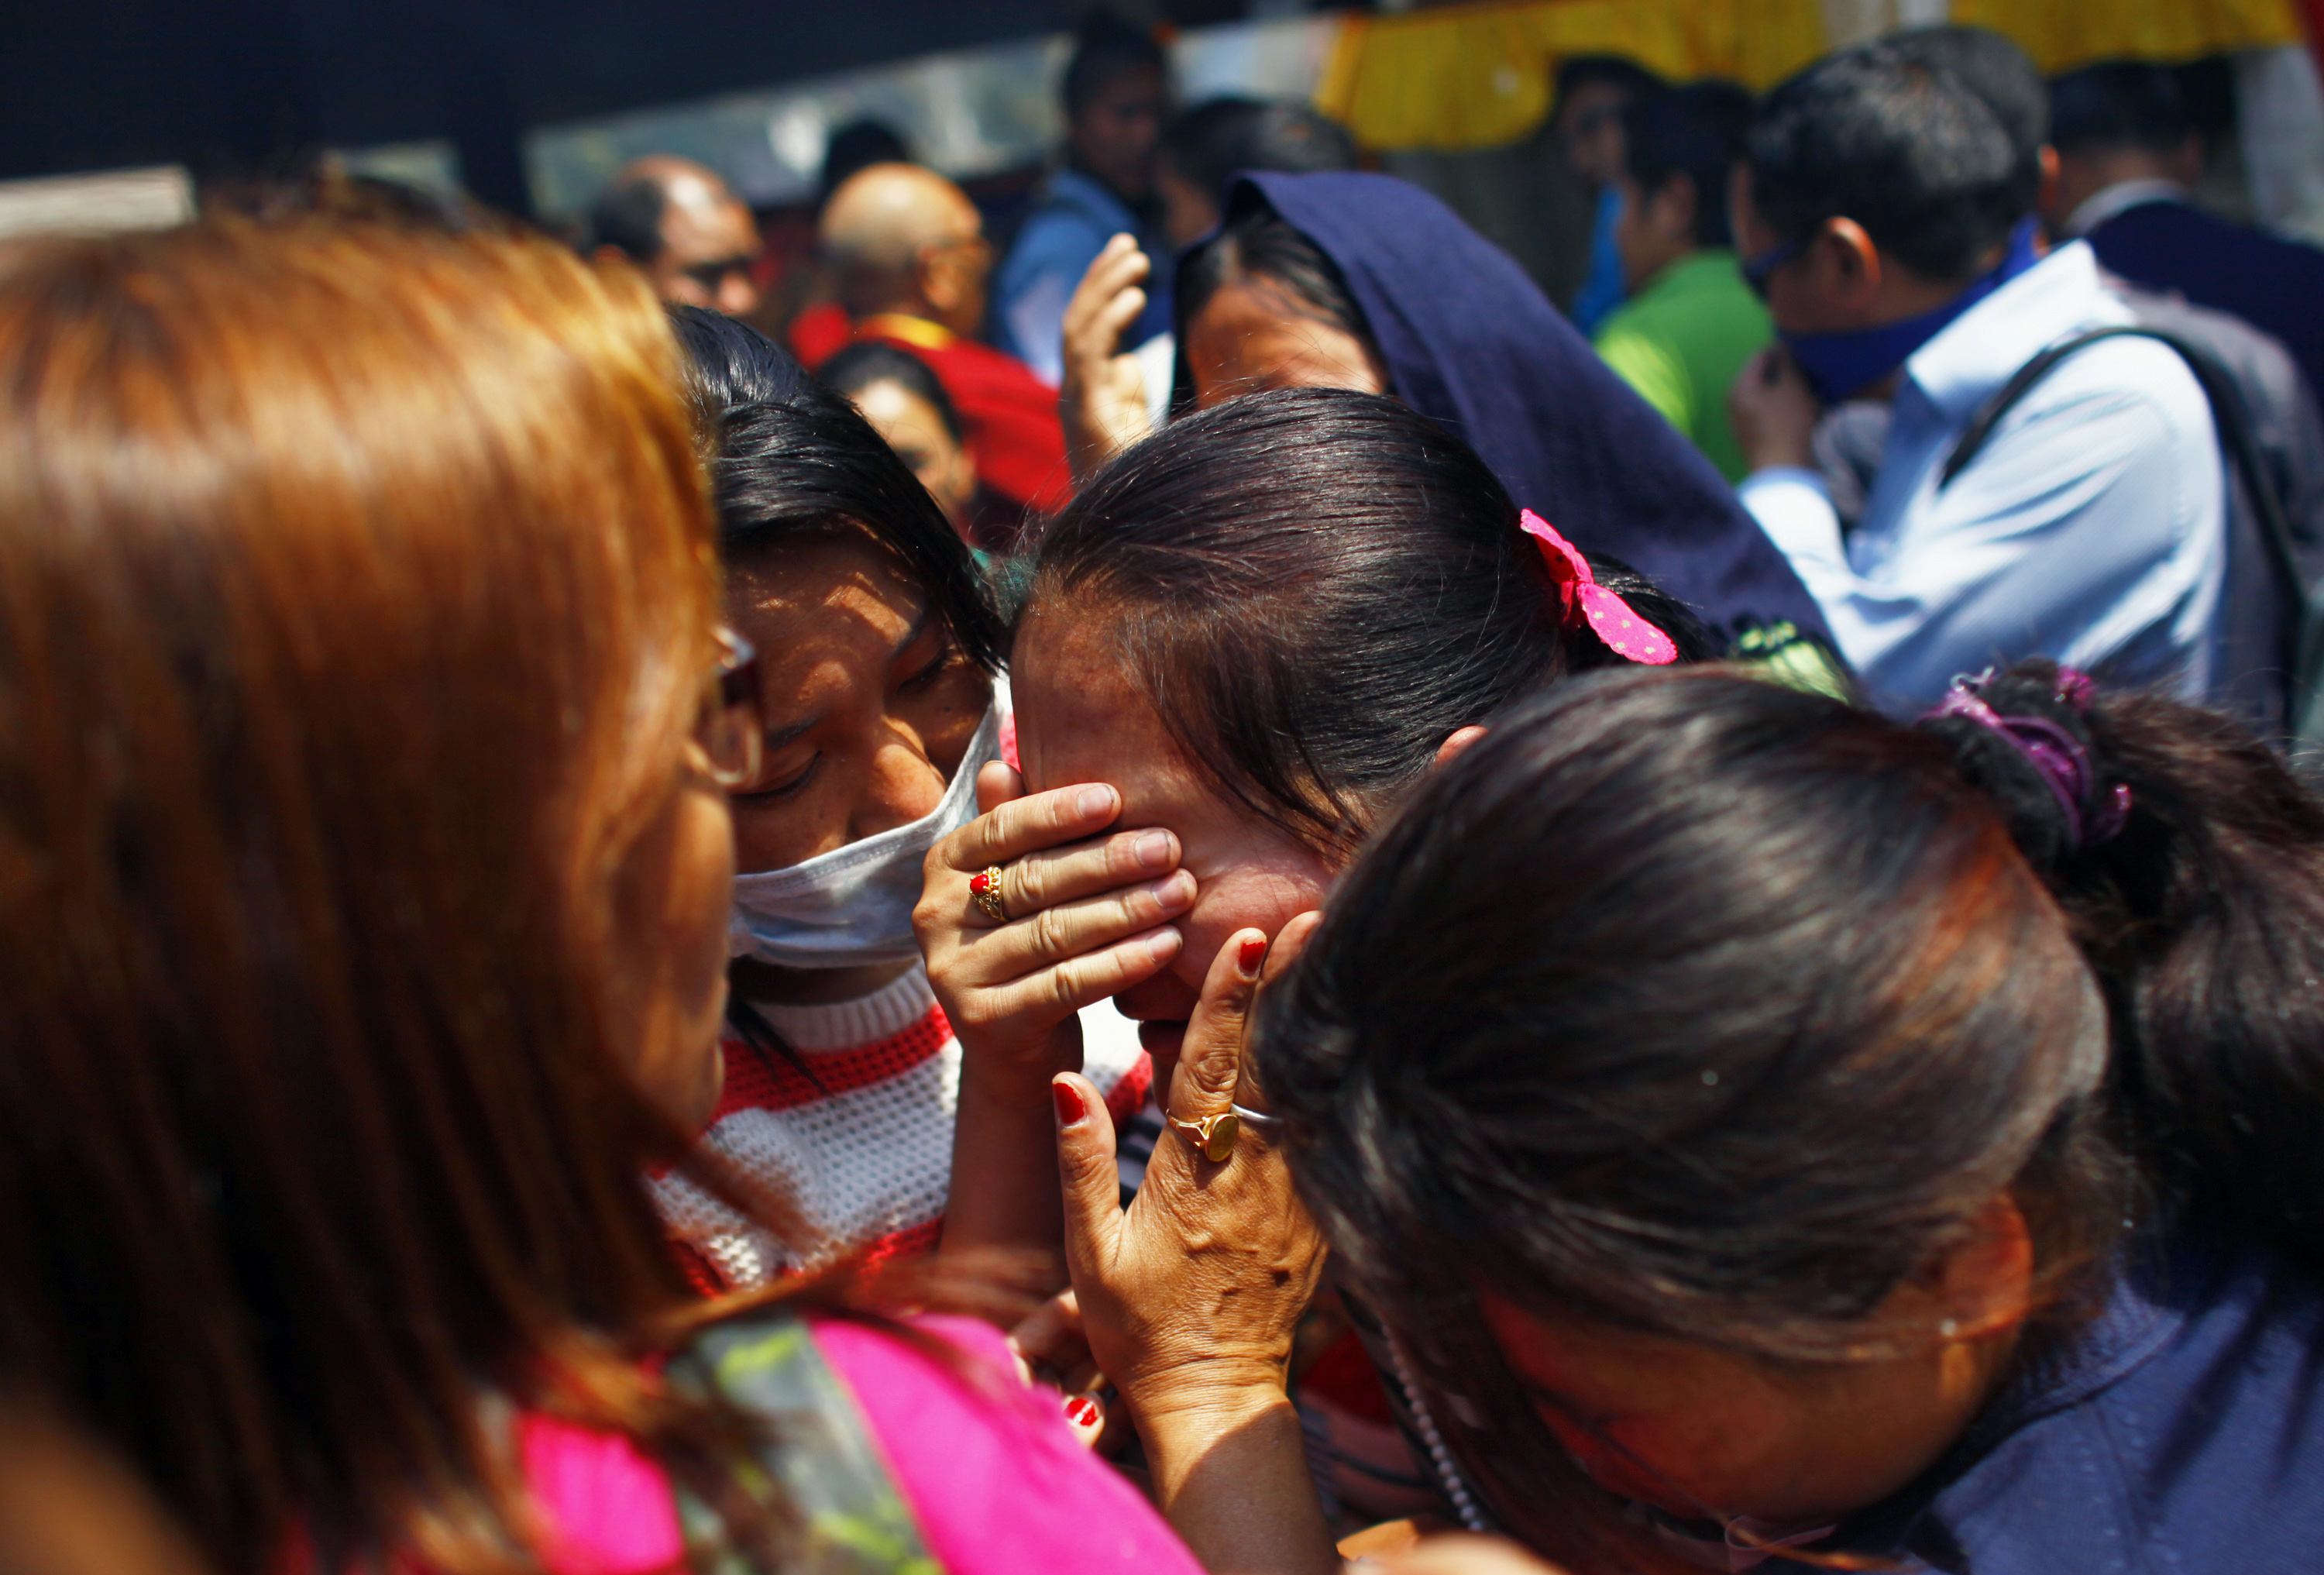 Relatives of mountaineers, killed in an avalanche on Mount Everest, cry during the funeral ceremony in Katmandu, Nepal on April 21, 2014.